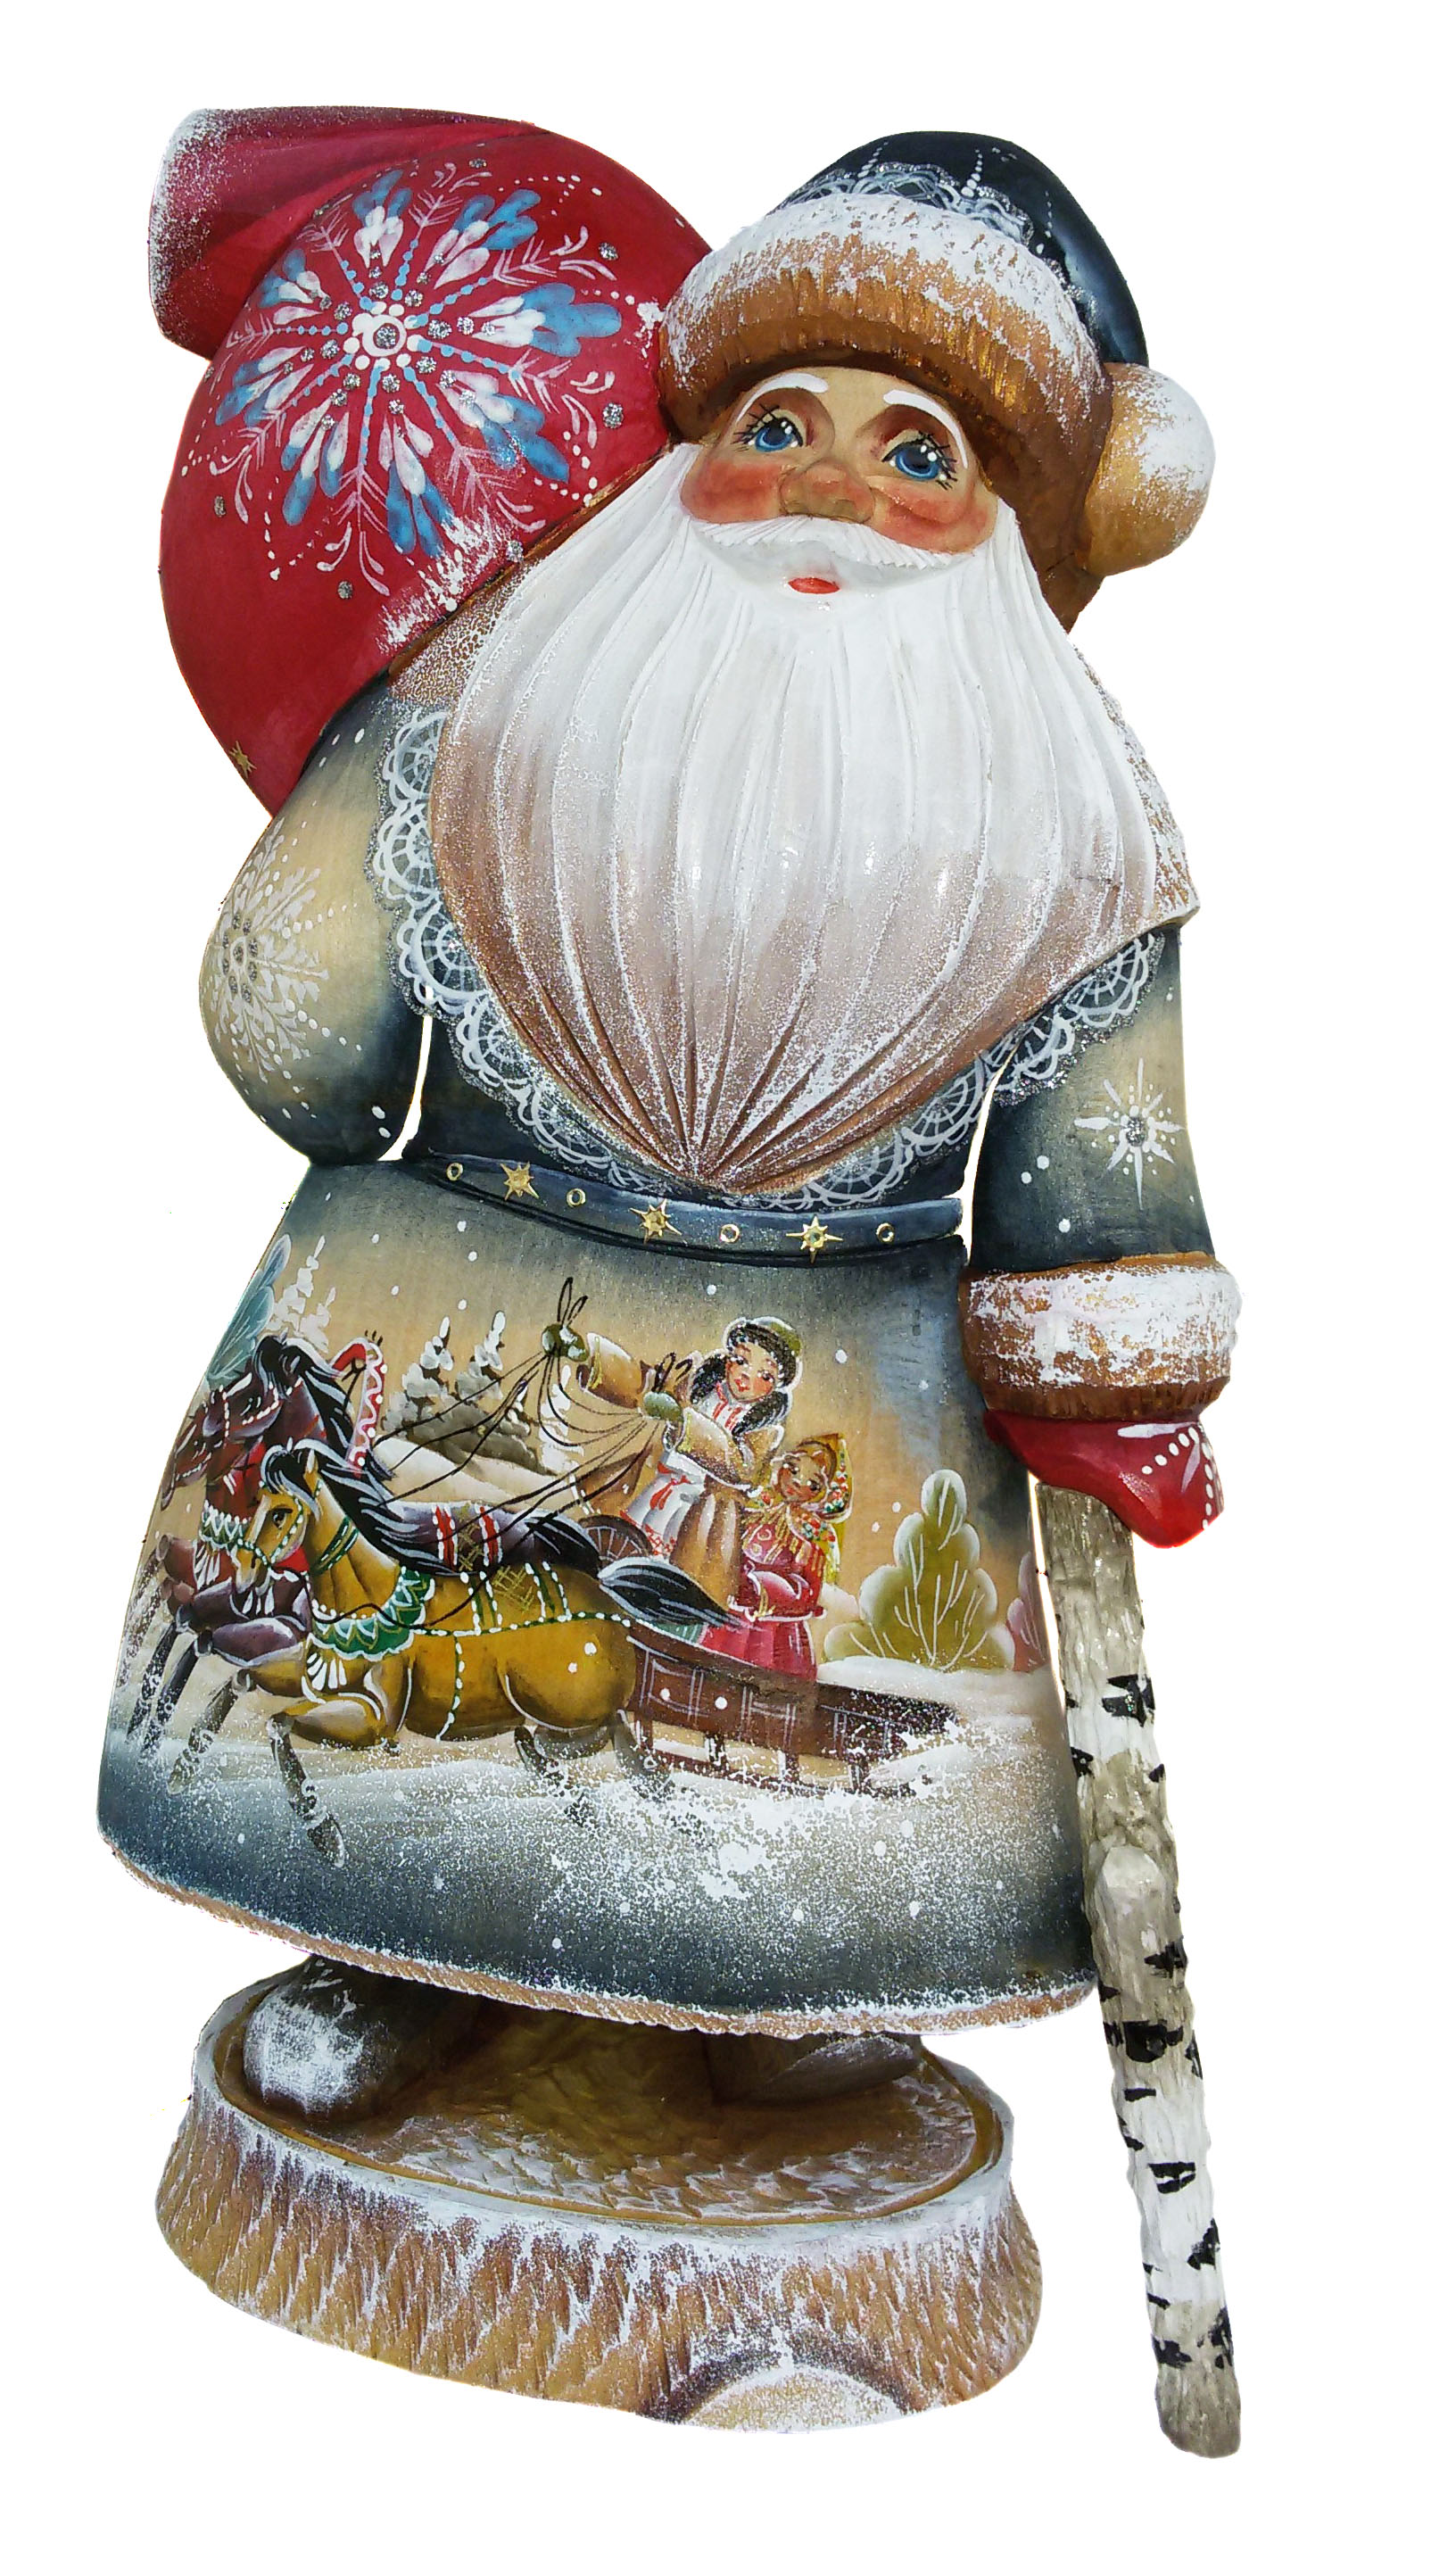 CK_ish18001 Traditionally hand carved of wood from linden tree and hand painted Santa Claus (34 cm)